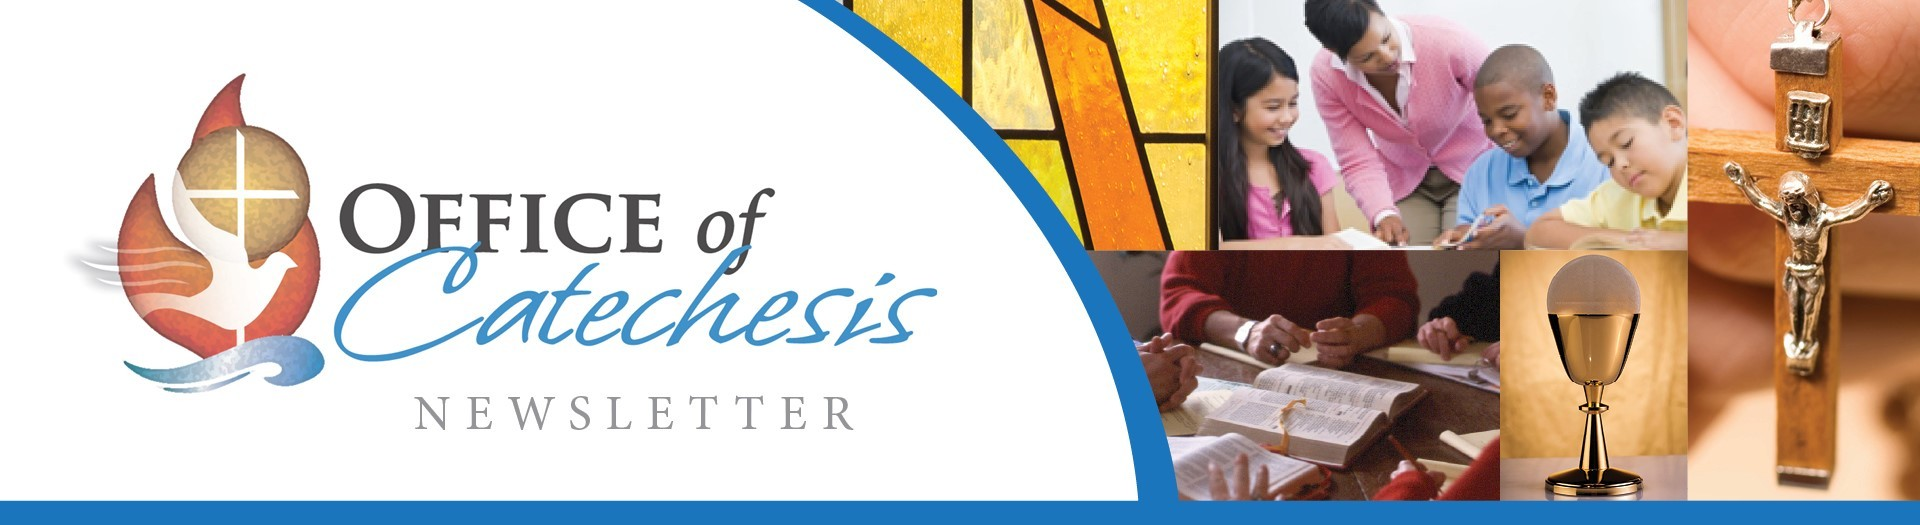 Archdiocese of Milwaukee - Office of Catechesis Newsletter